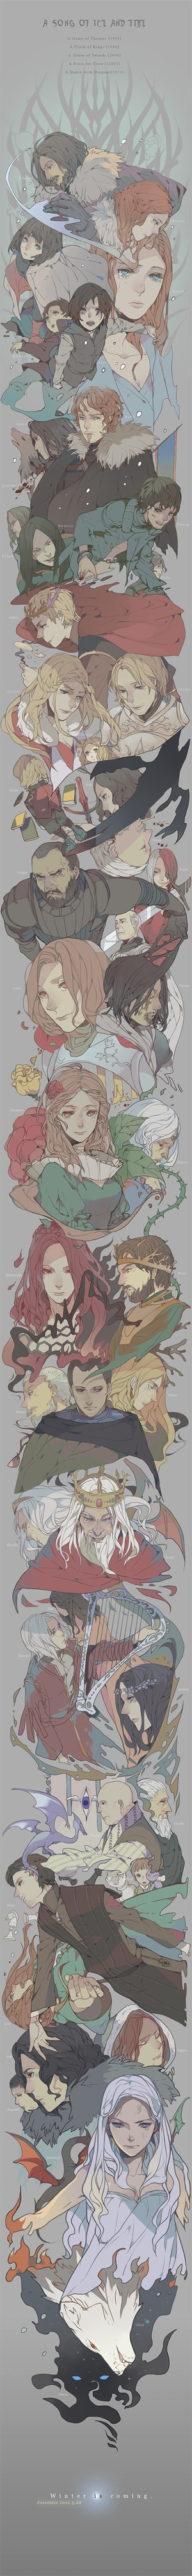 What if Game of Thrones got a manga adaptation?